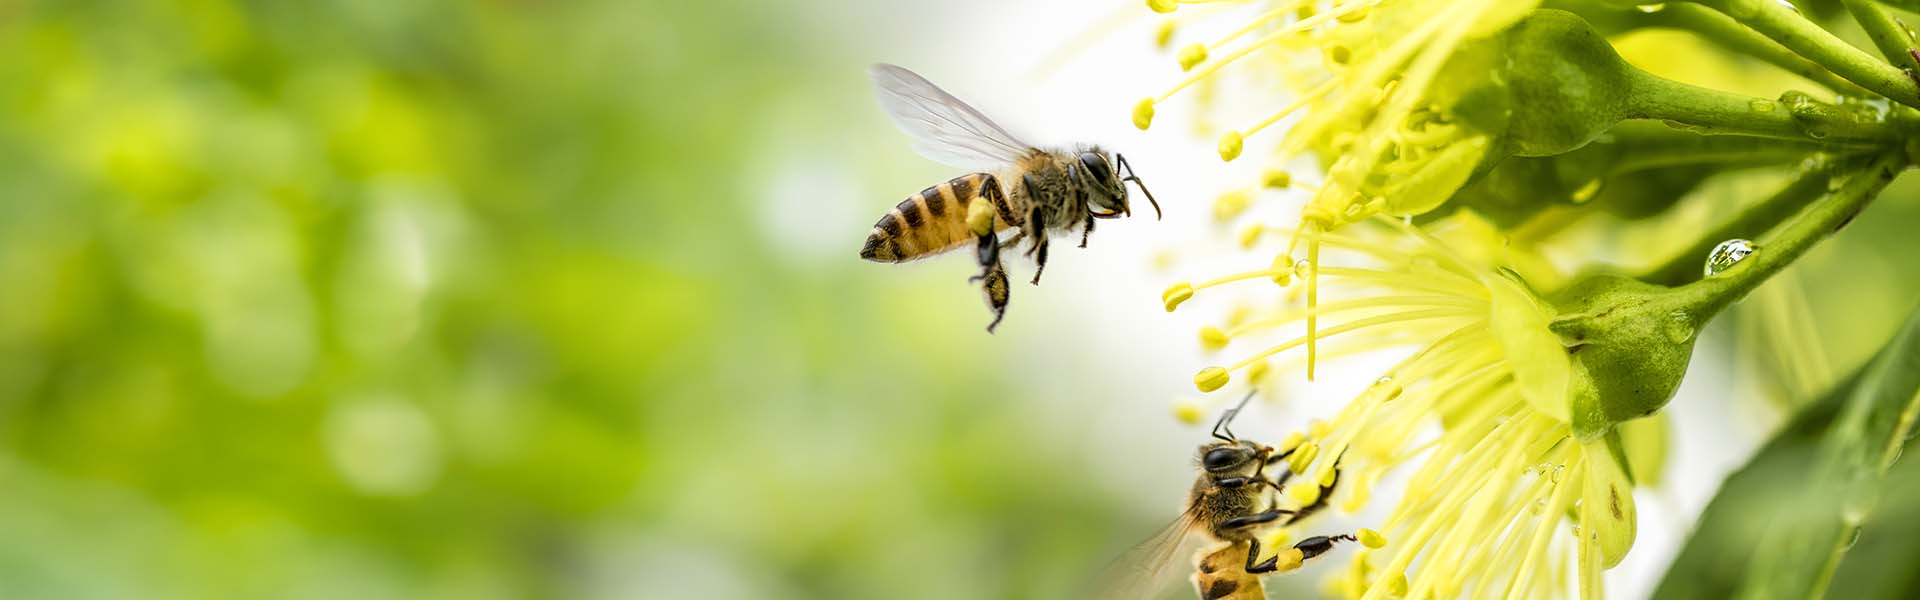 Flying honey bee collecting pollen at yellow flower